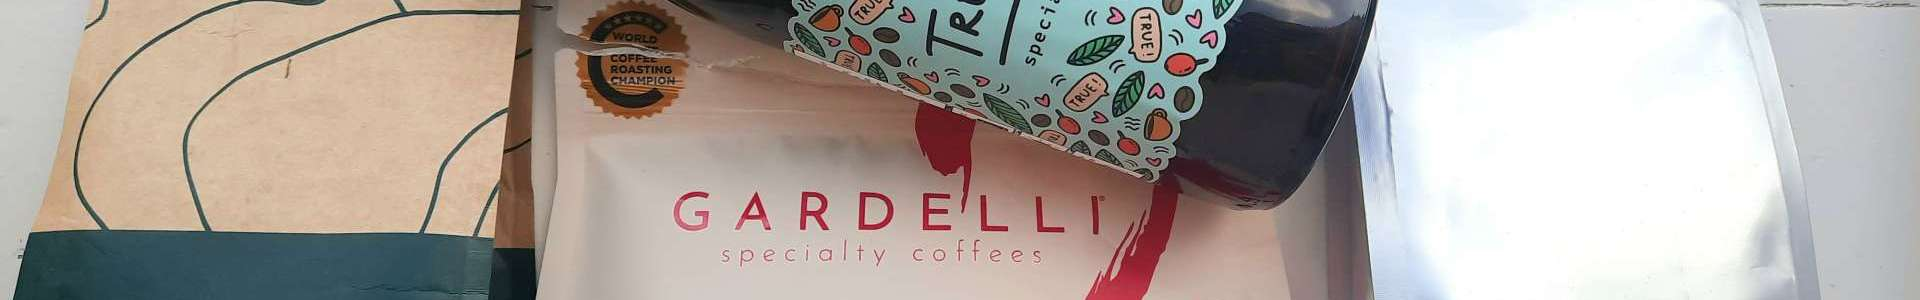 Is your coffee packaging sustainable?